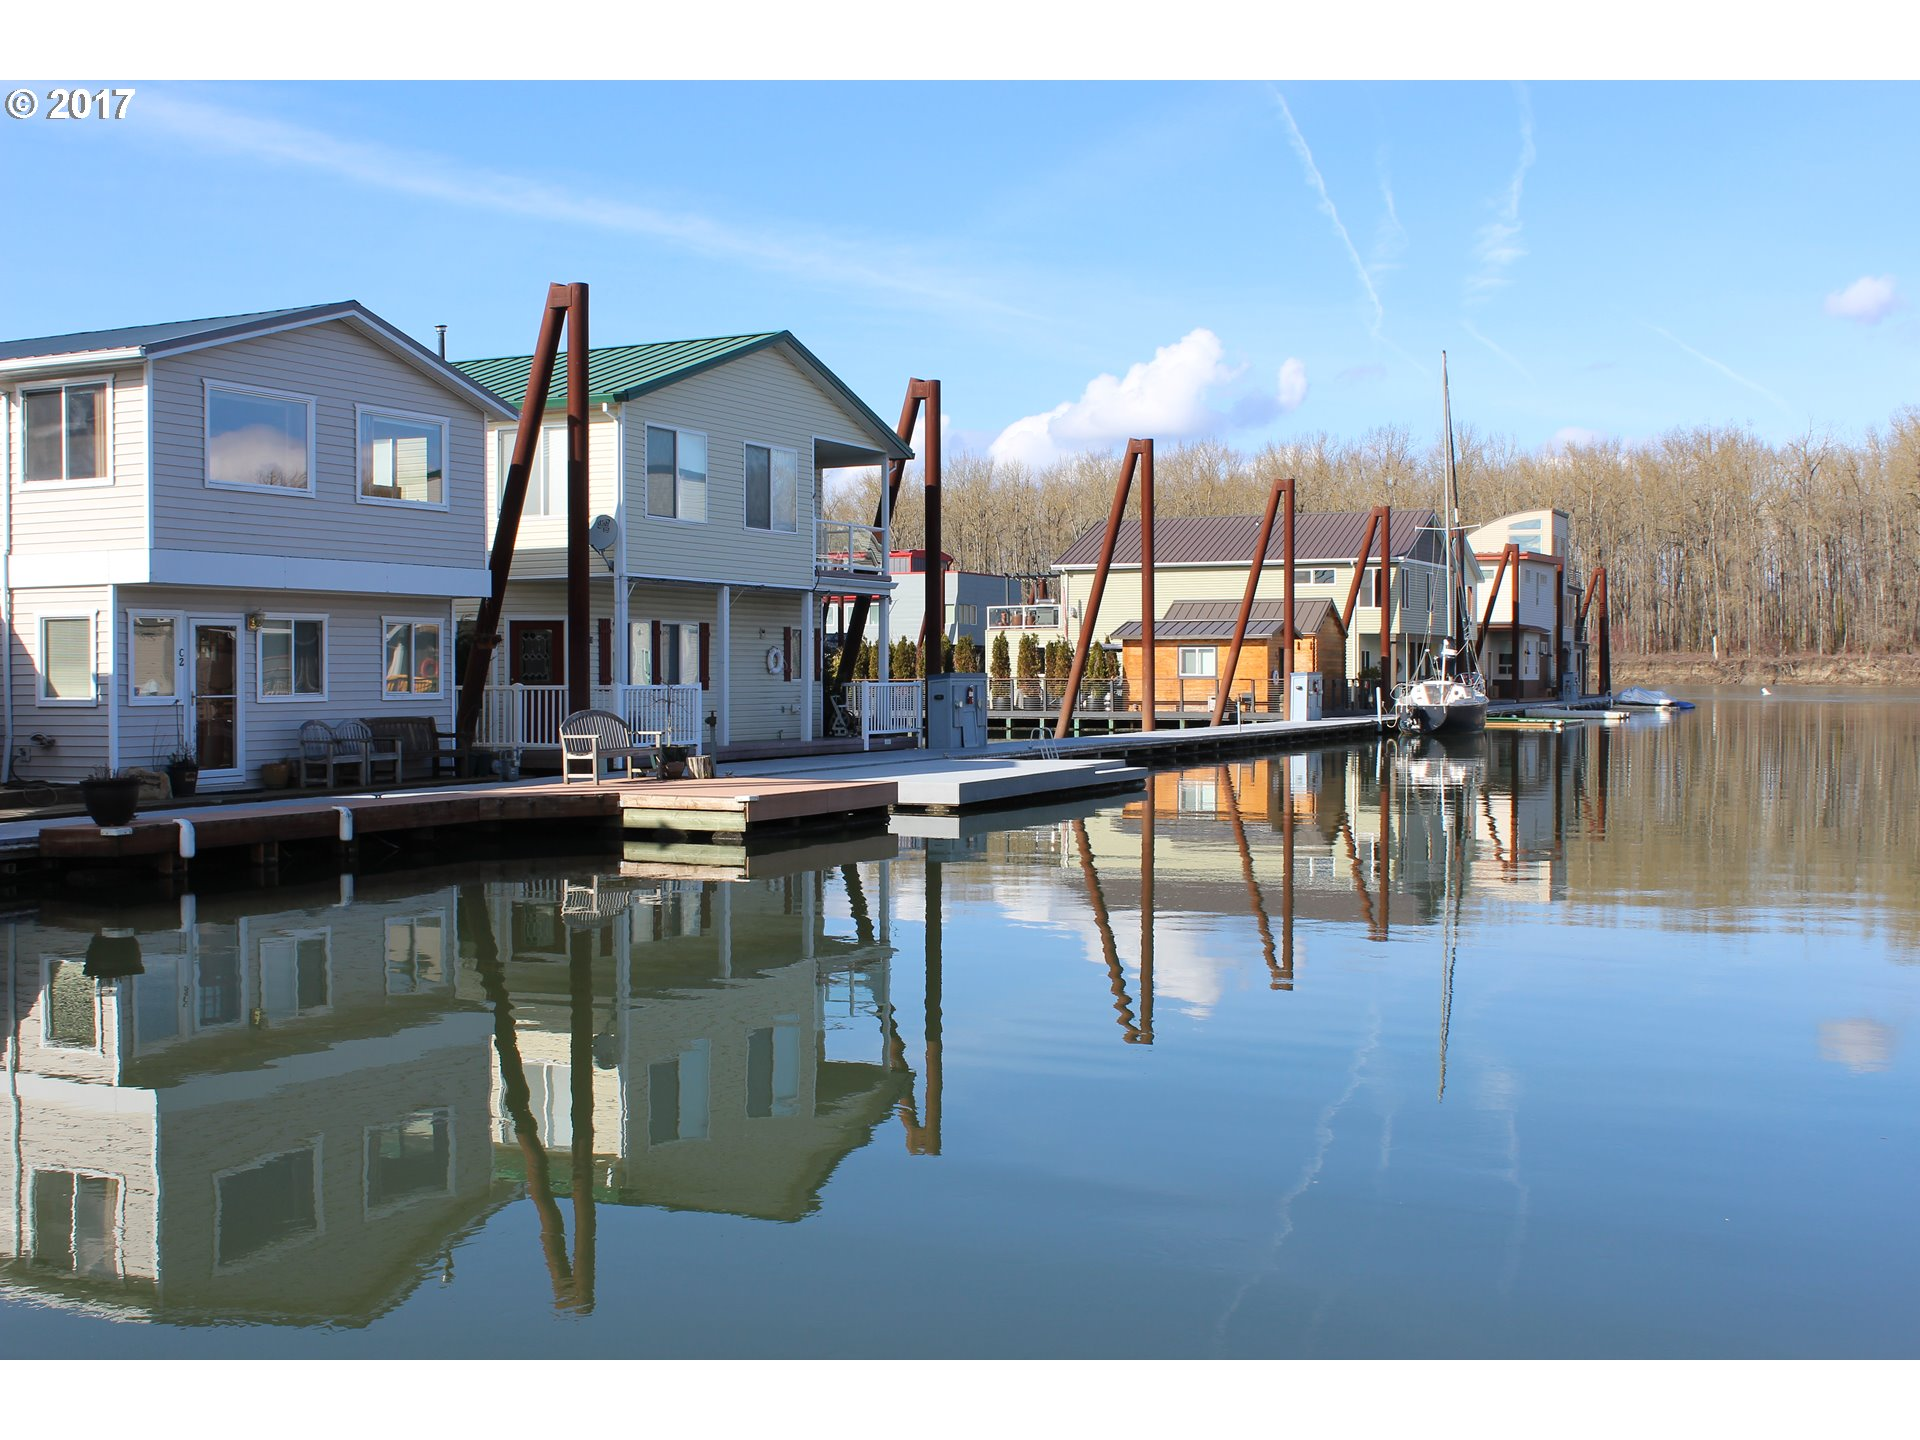 Floating homes for sale in portland oregon floating home for Floating homes portland